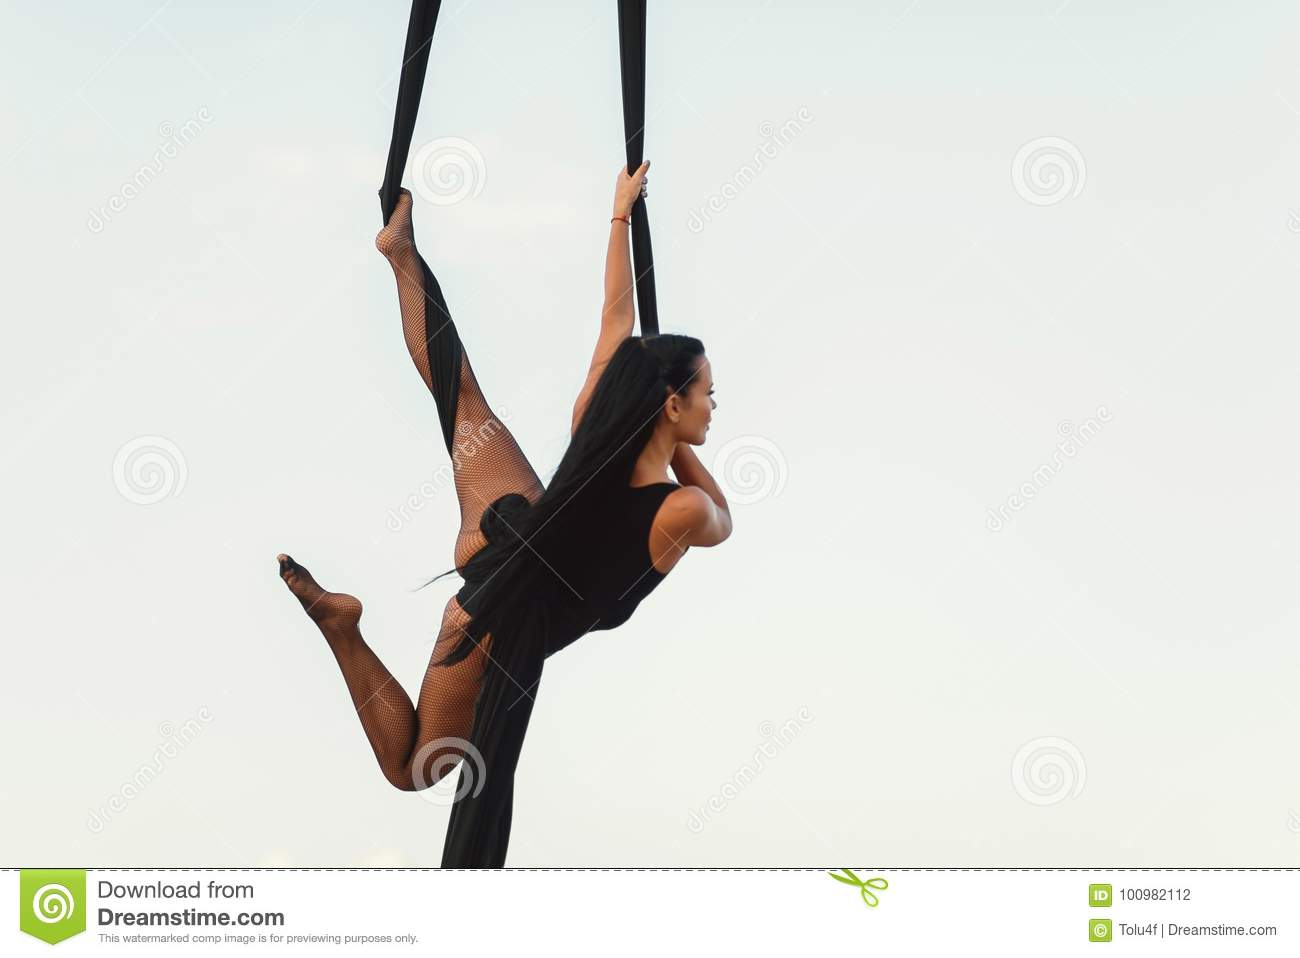 Elegance young beautiful woman dance with aerial silk on a sky background. Fly yoga sport